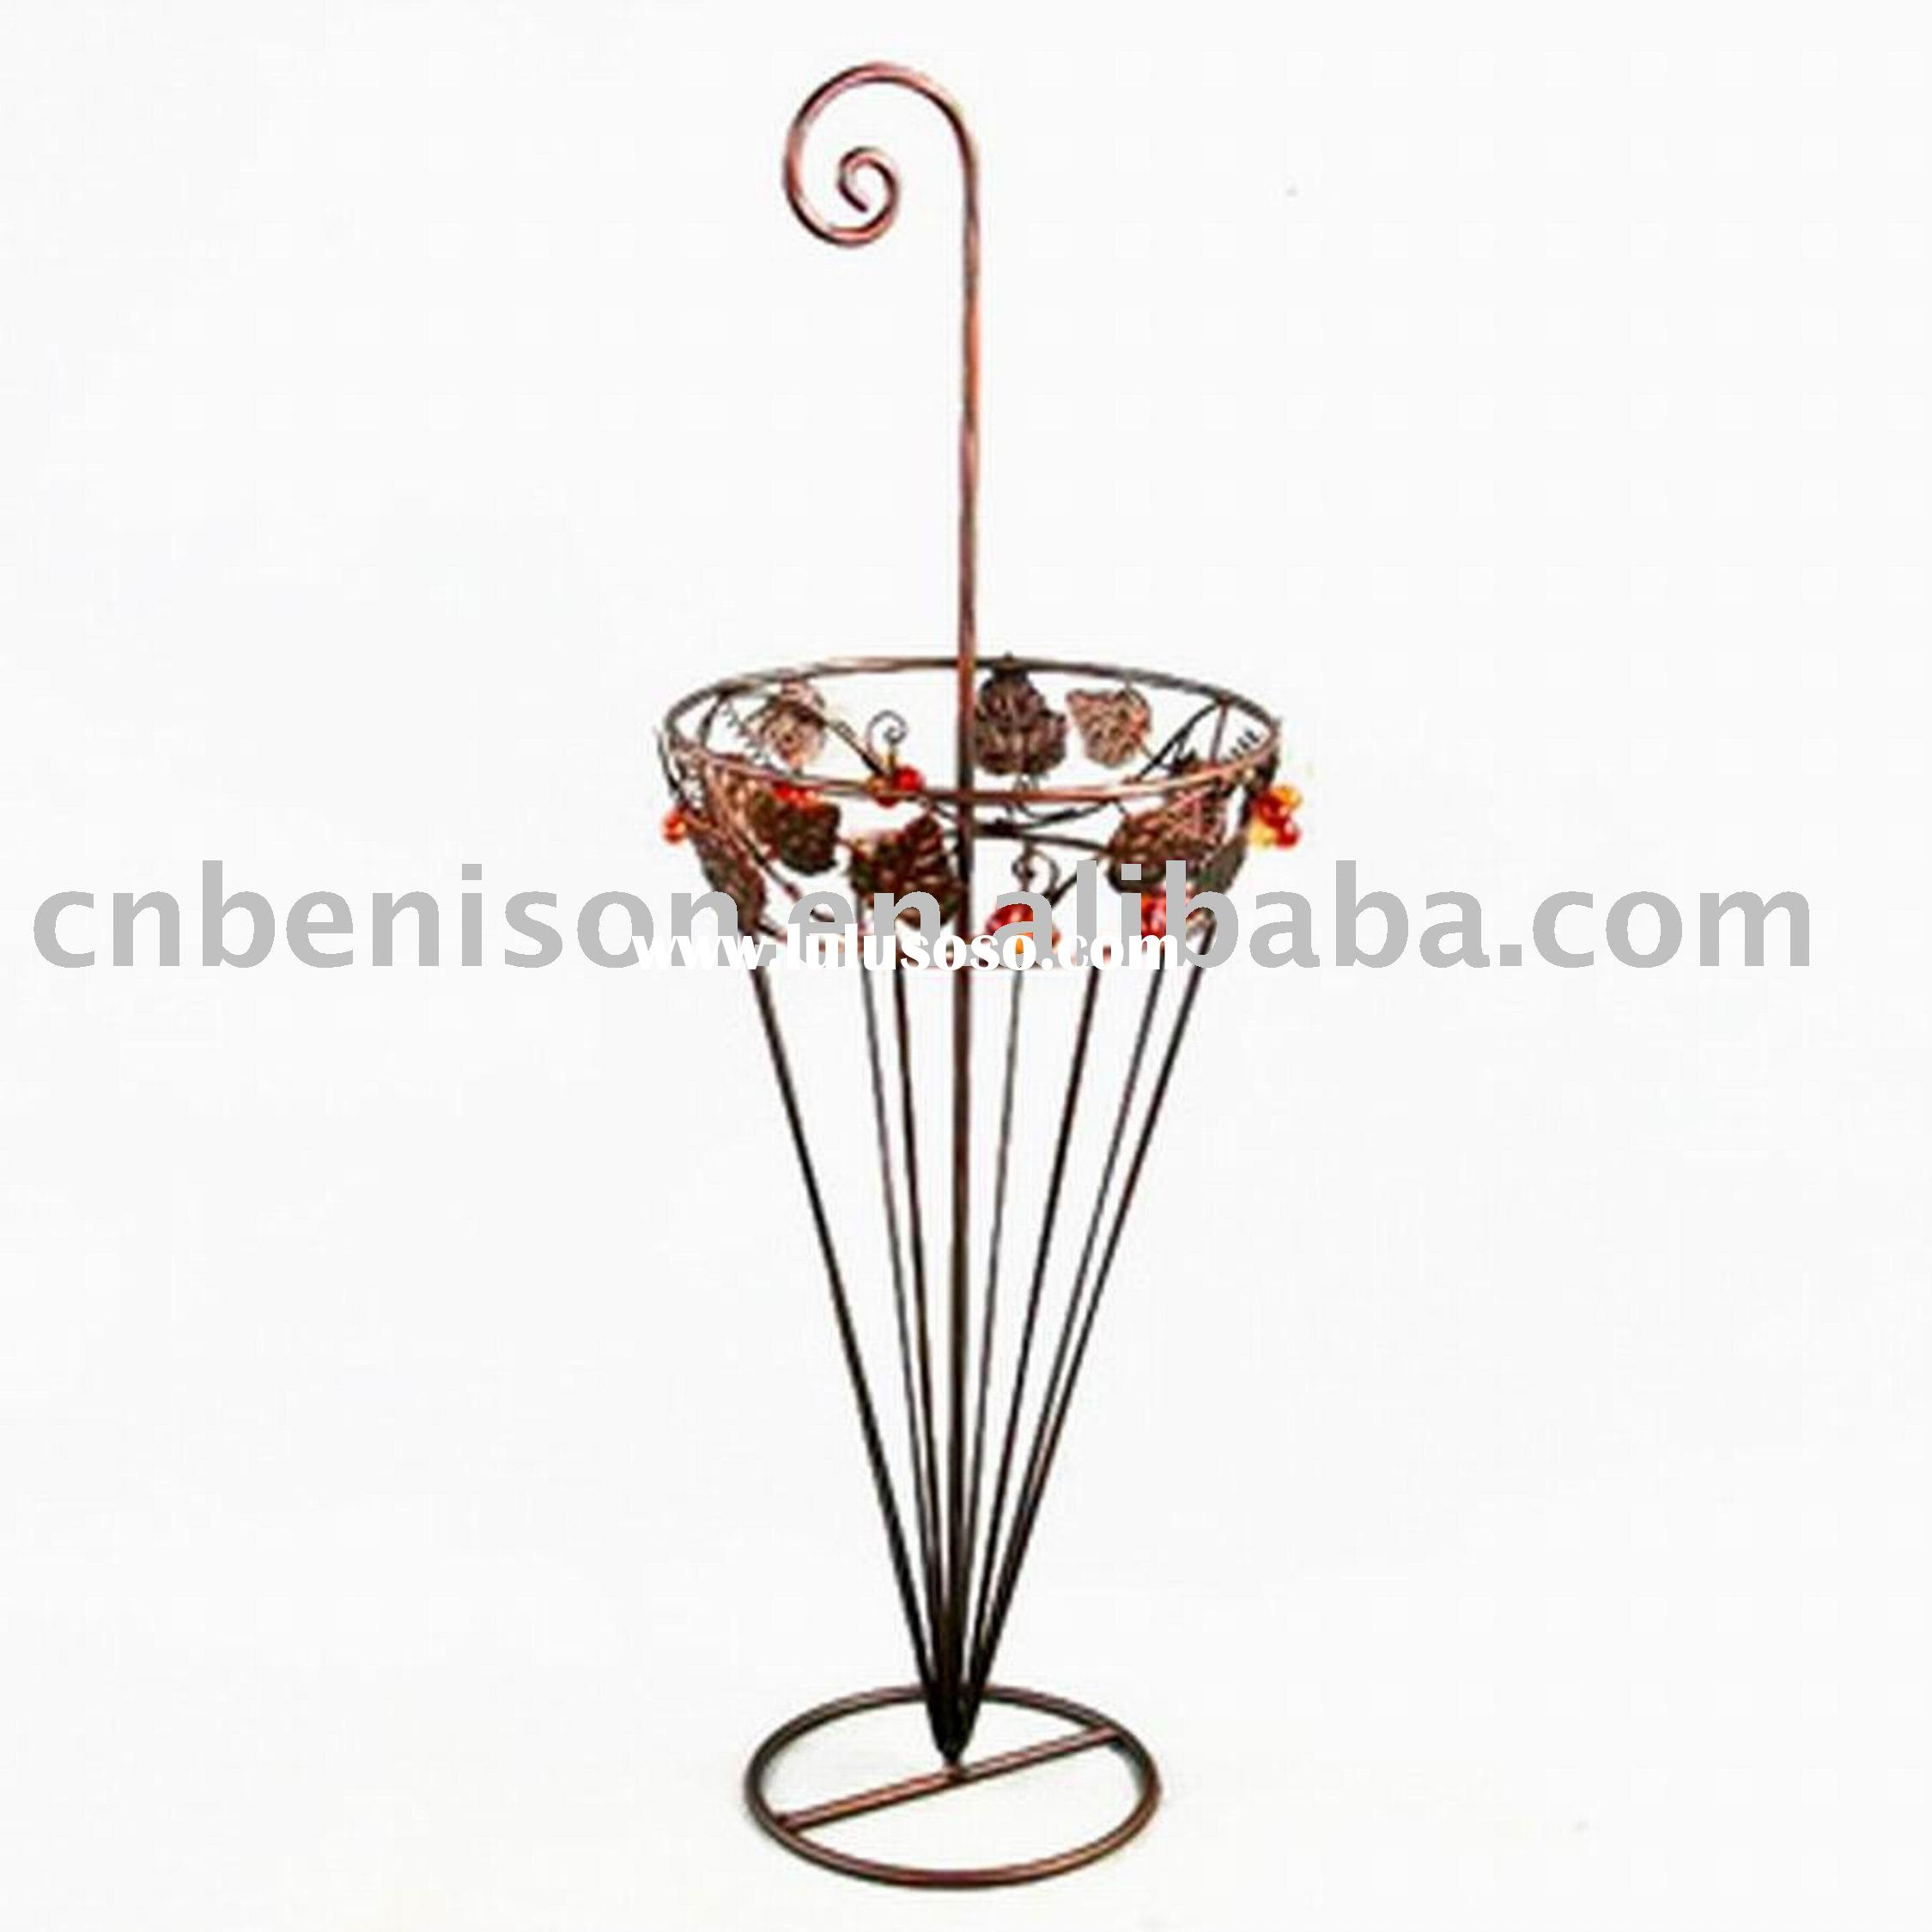 Antique Cheap Rain Decorative Indoor Metal Umbrella Stands